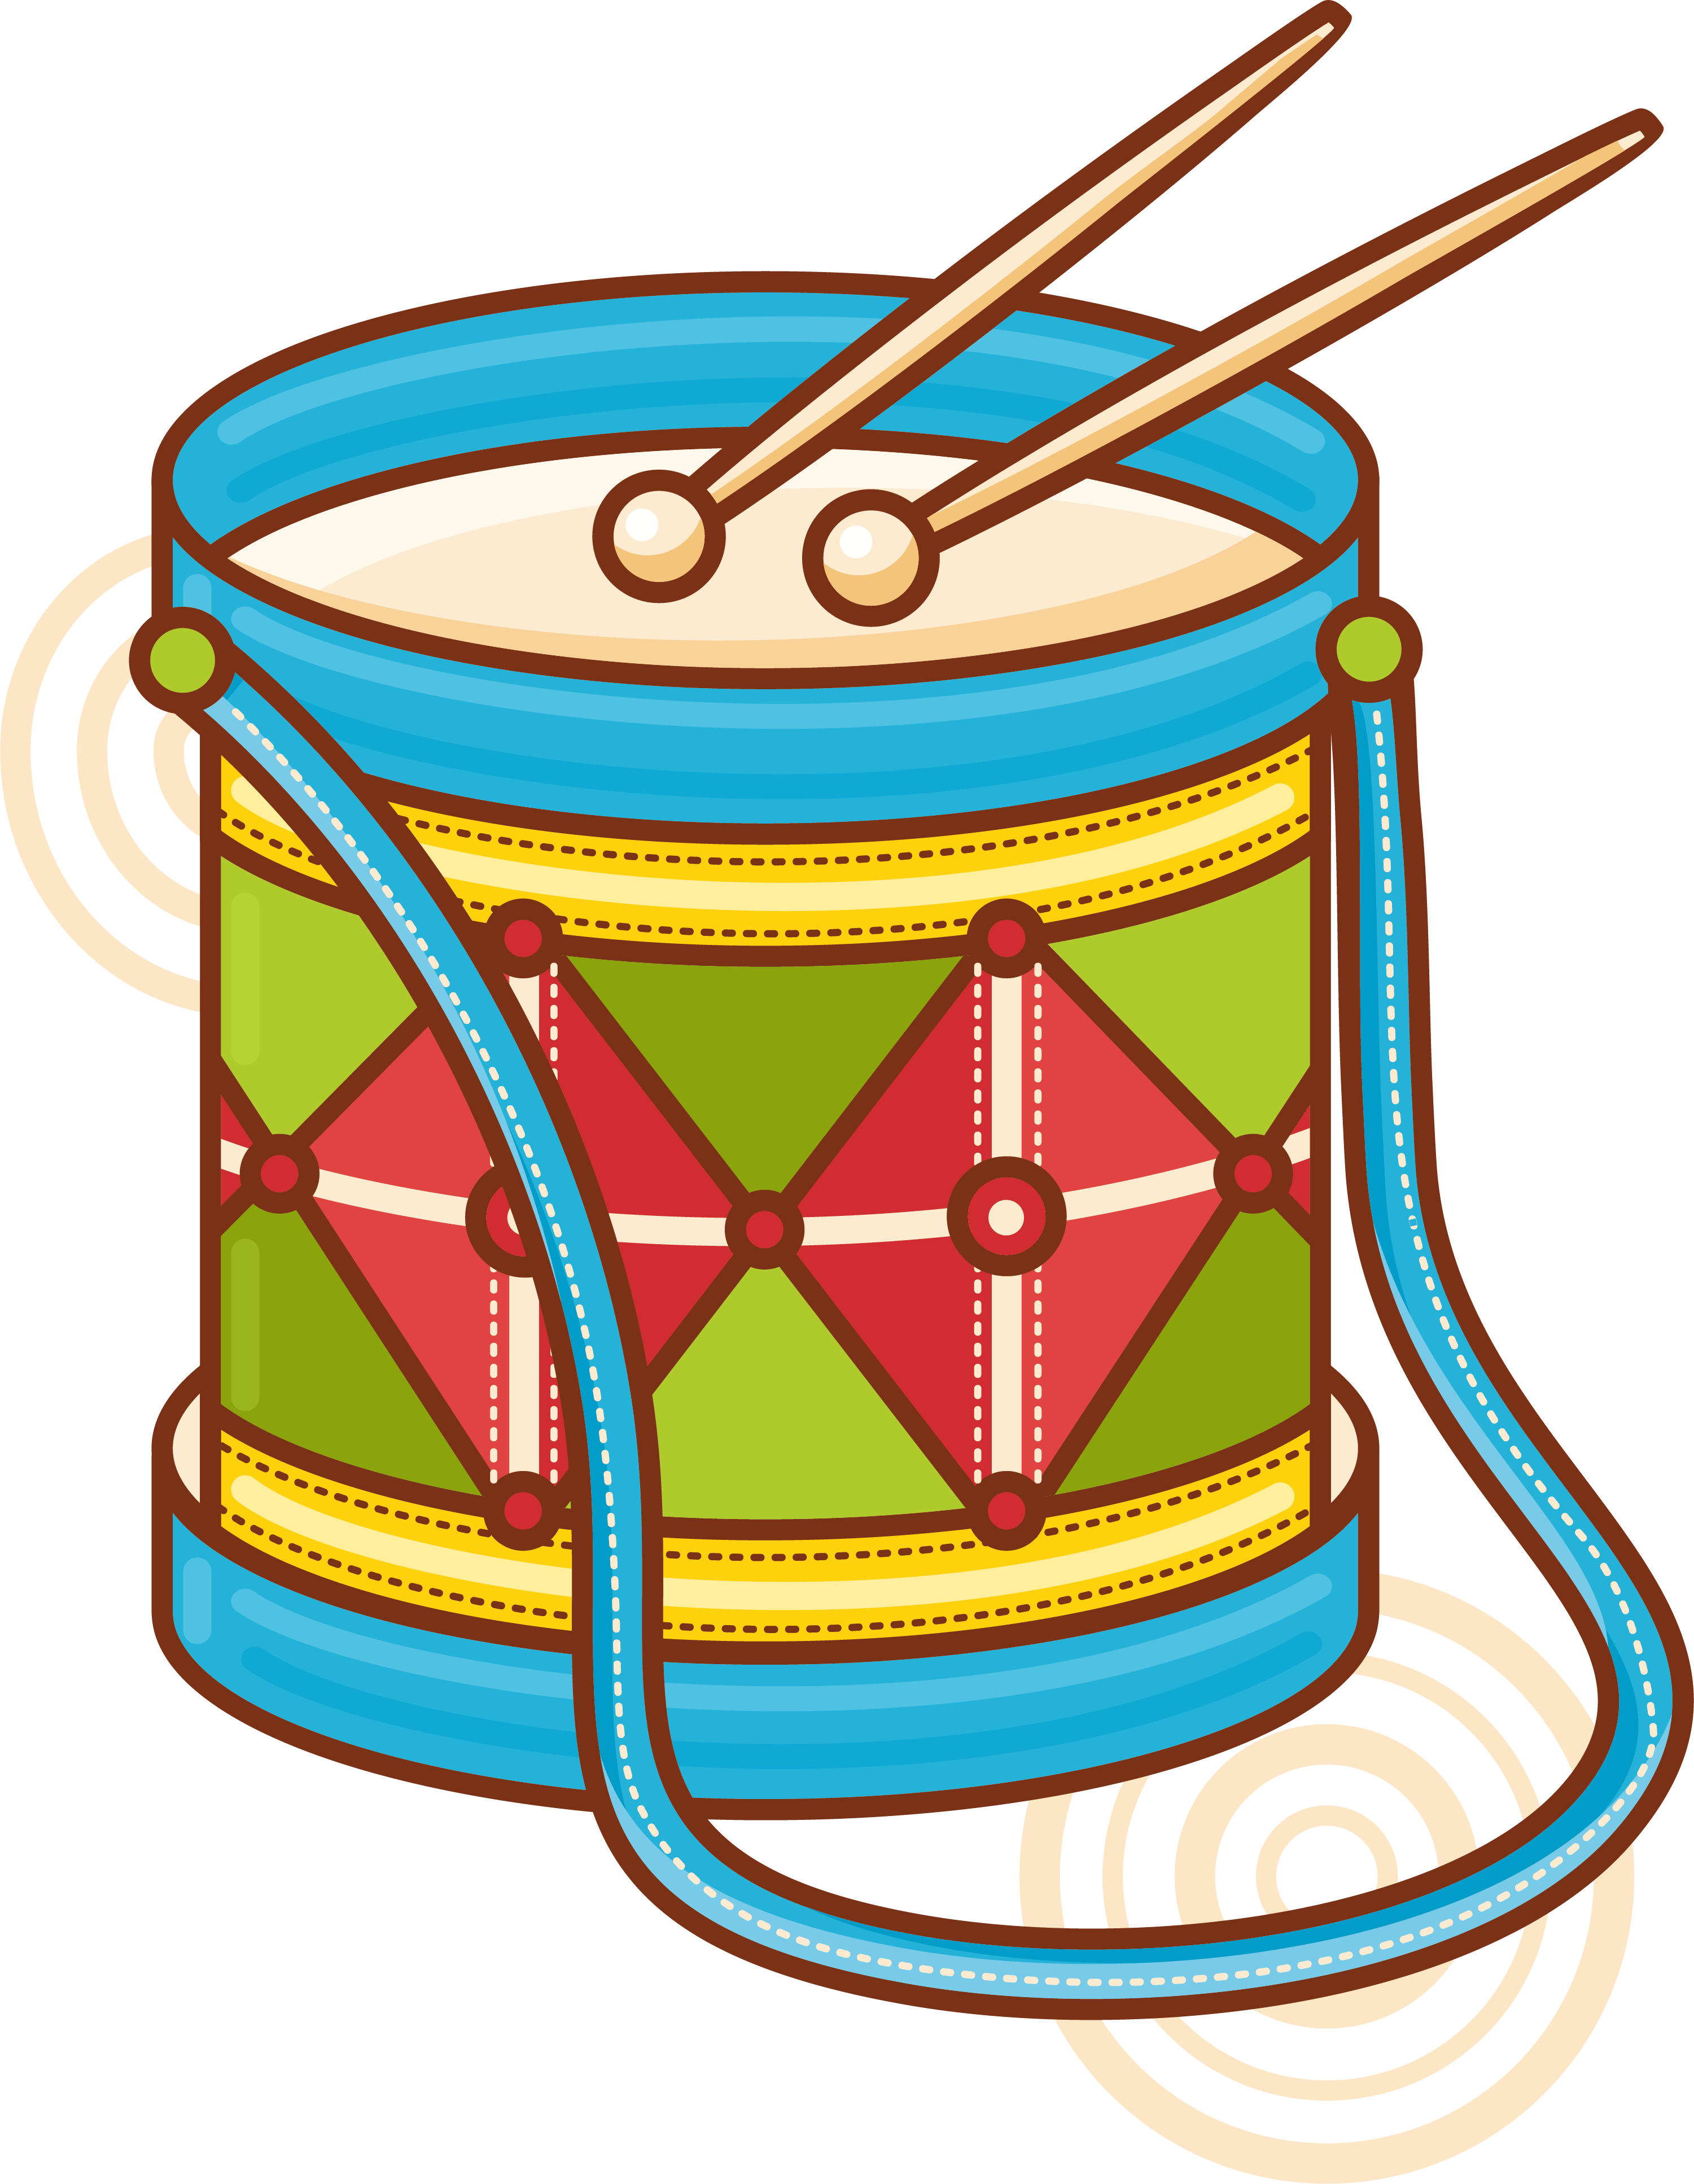 Musical instrument royalty free. Drums clipart drum indian